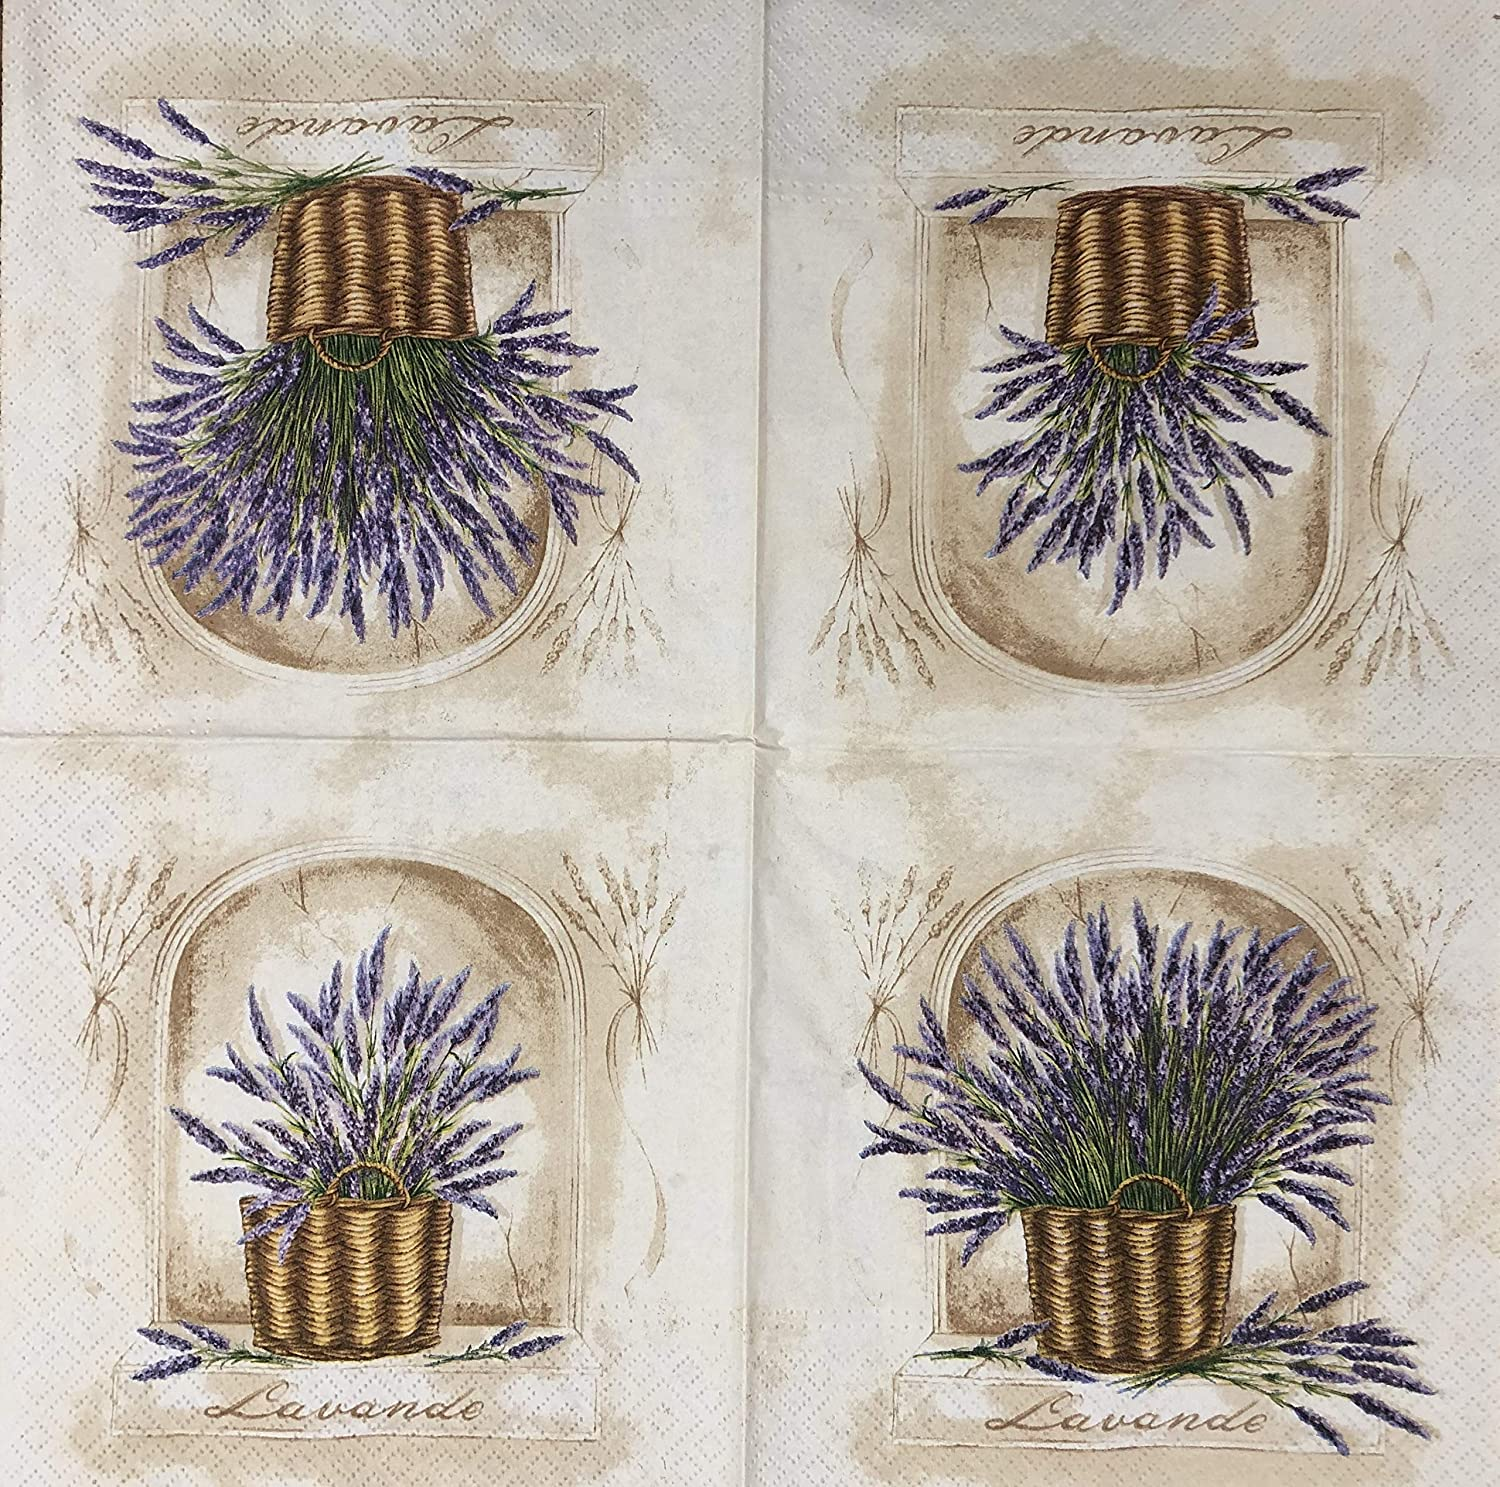 2 single Paper Napkins for DECOUPAGE Crafts Collection Party Lavender Plants Nature Spring Flowers Blossom Bucket Garden